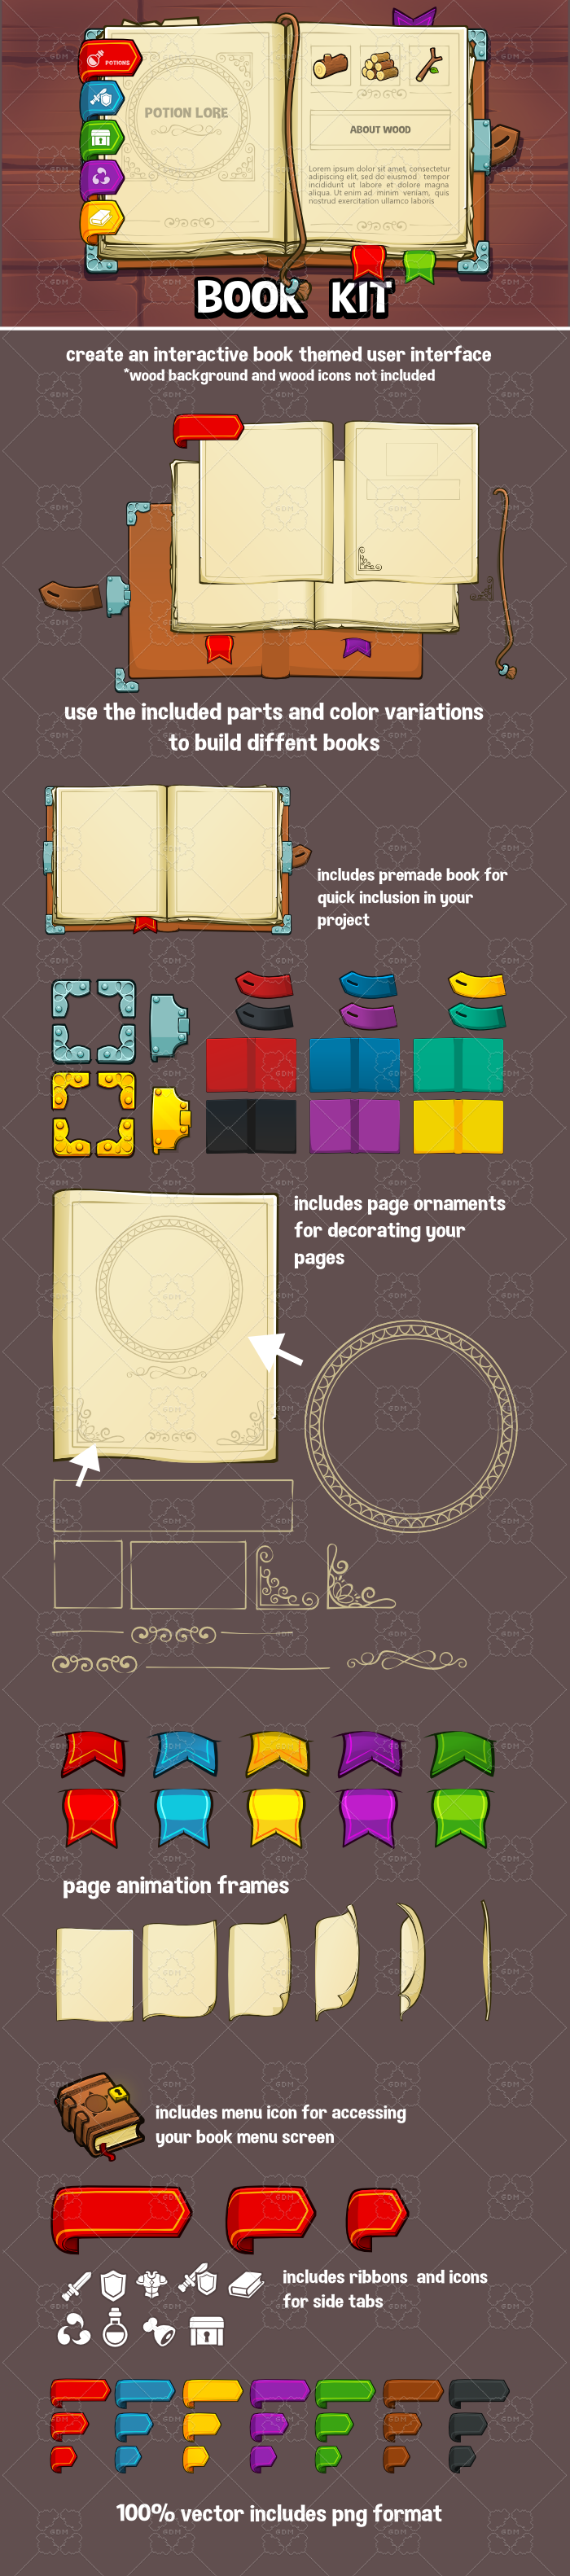 Book themed user interface creation kit